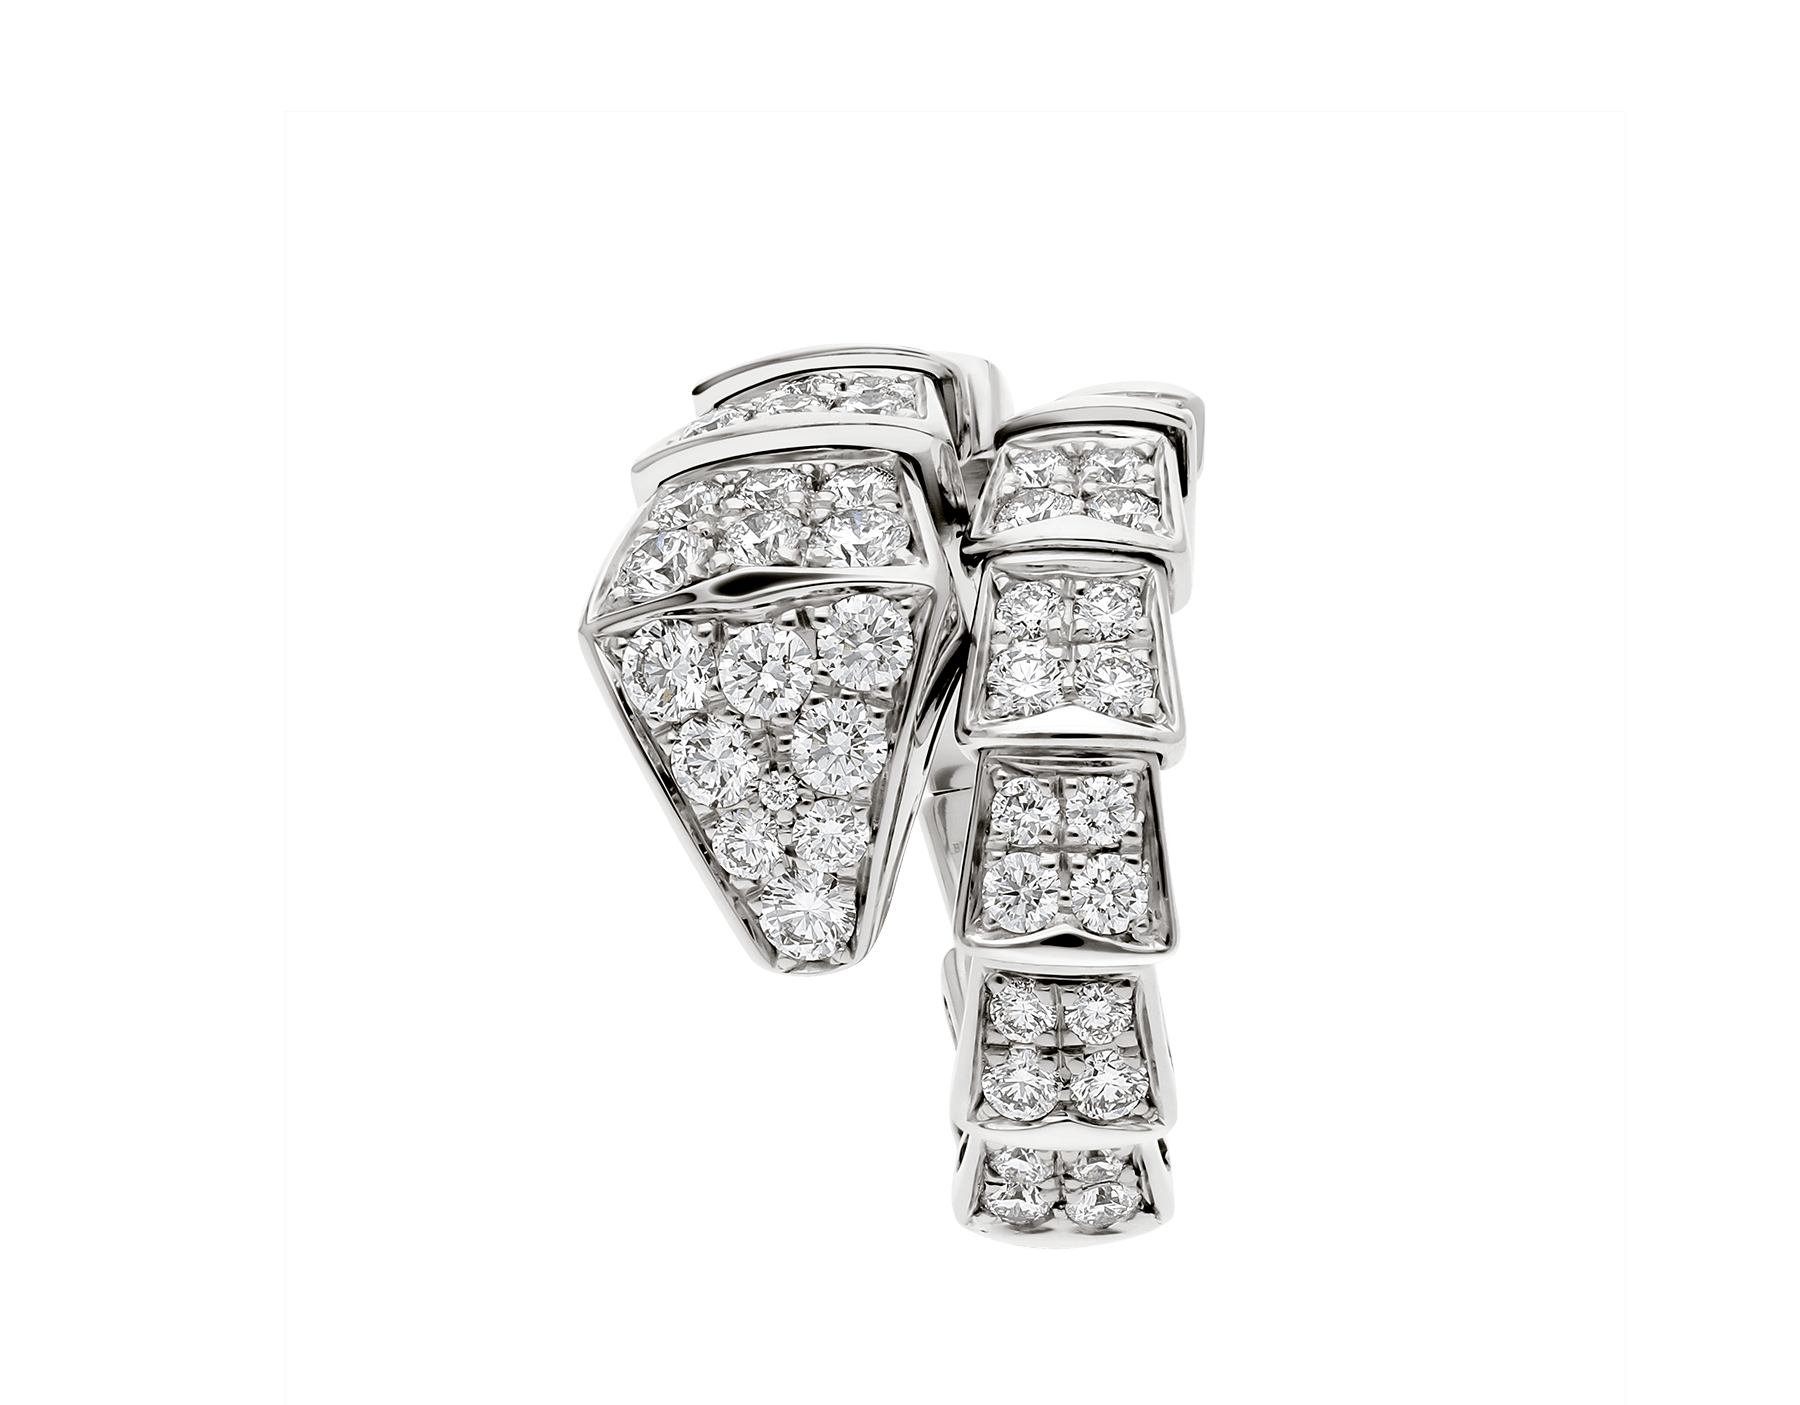 Serpenti one-coil ring in 18 kt white gold, set with full pavé diamonds. AN855116 image 3